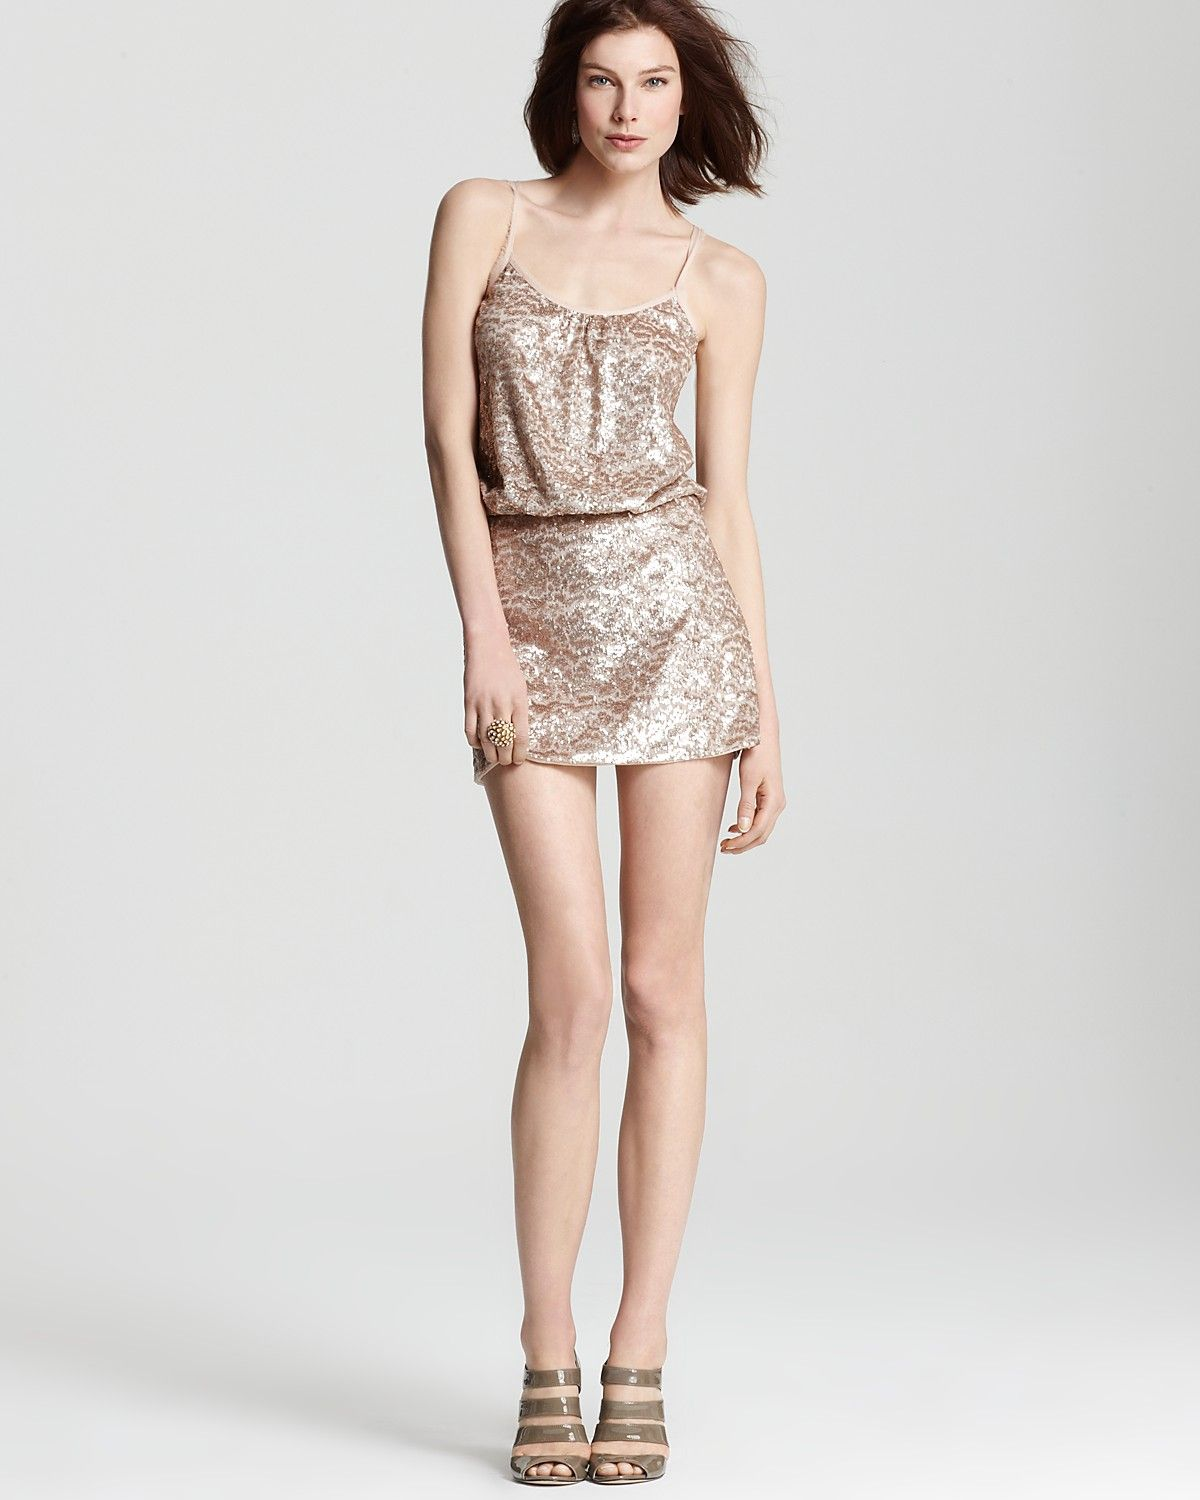 Rebecca Taylor Sequin Dress - Cami | Bloomingdale's | wanted ...